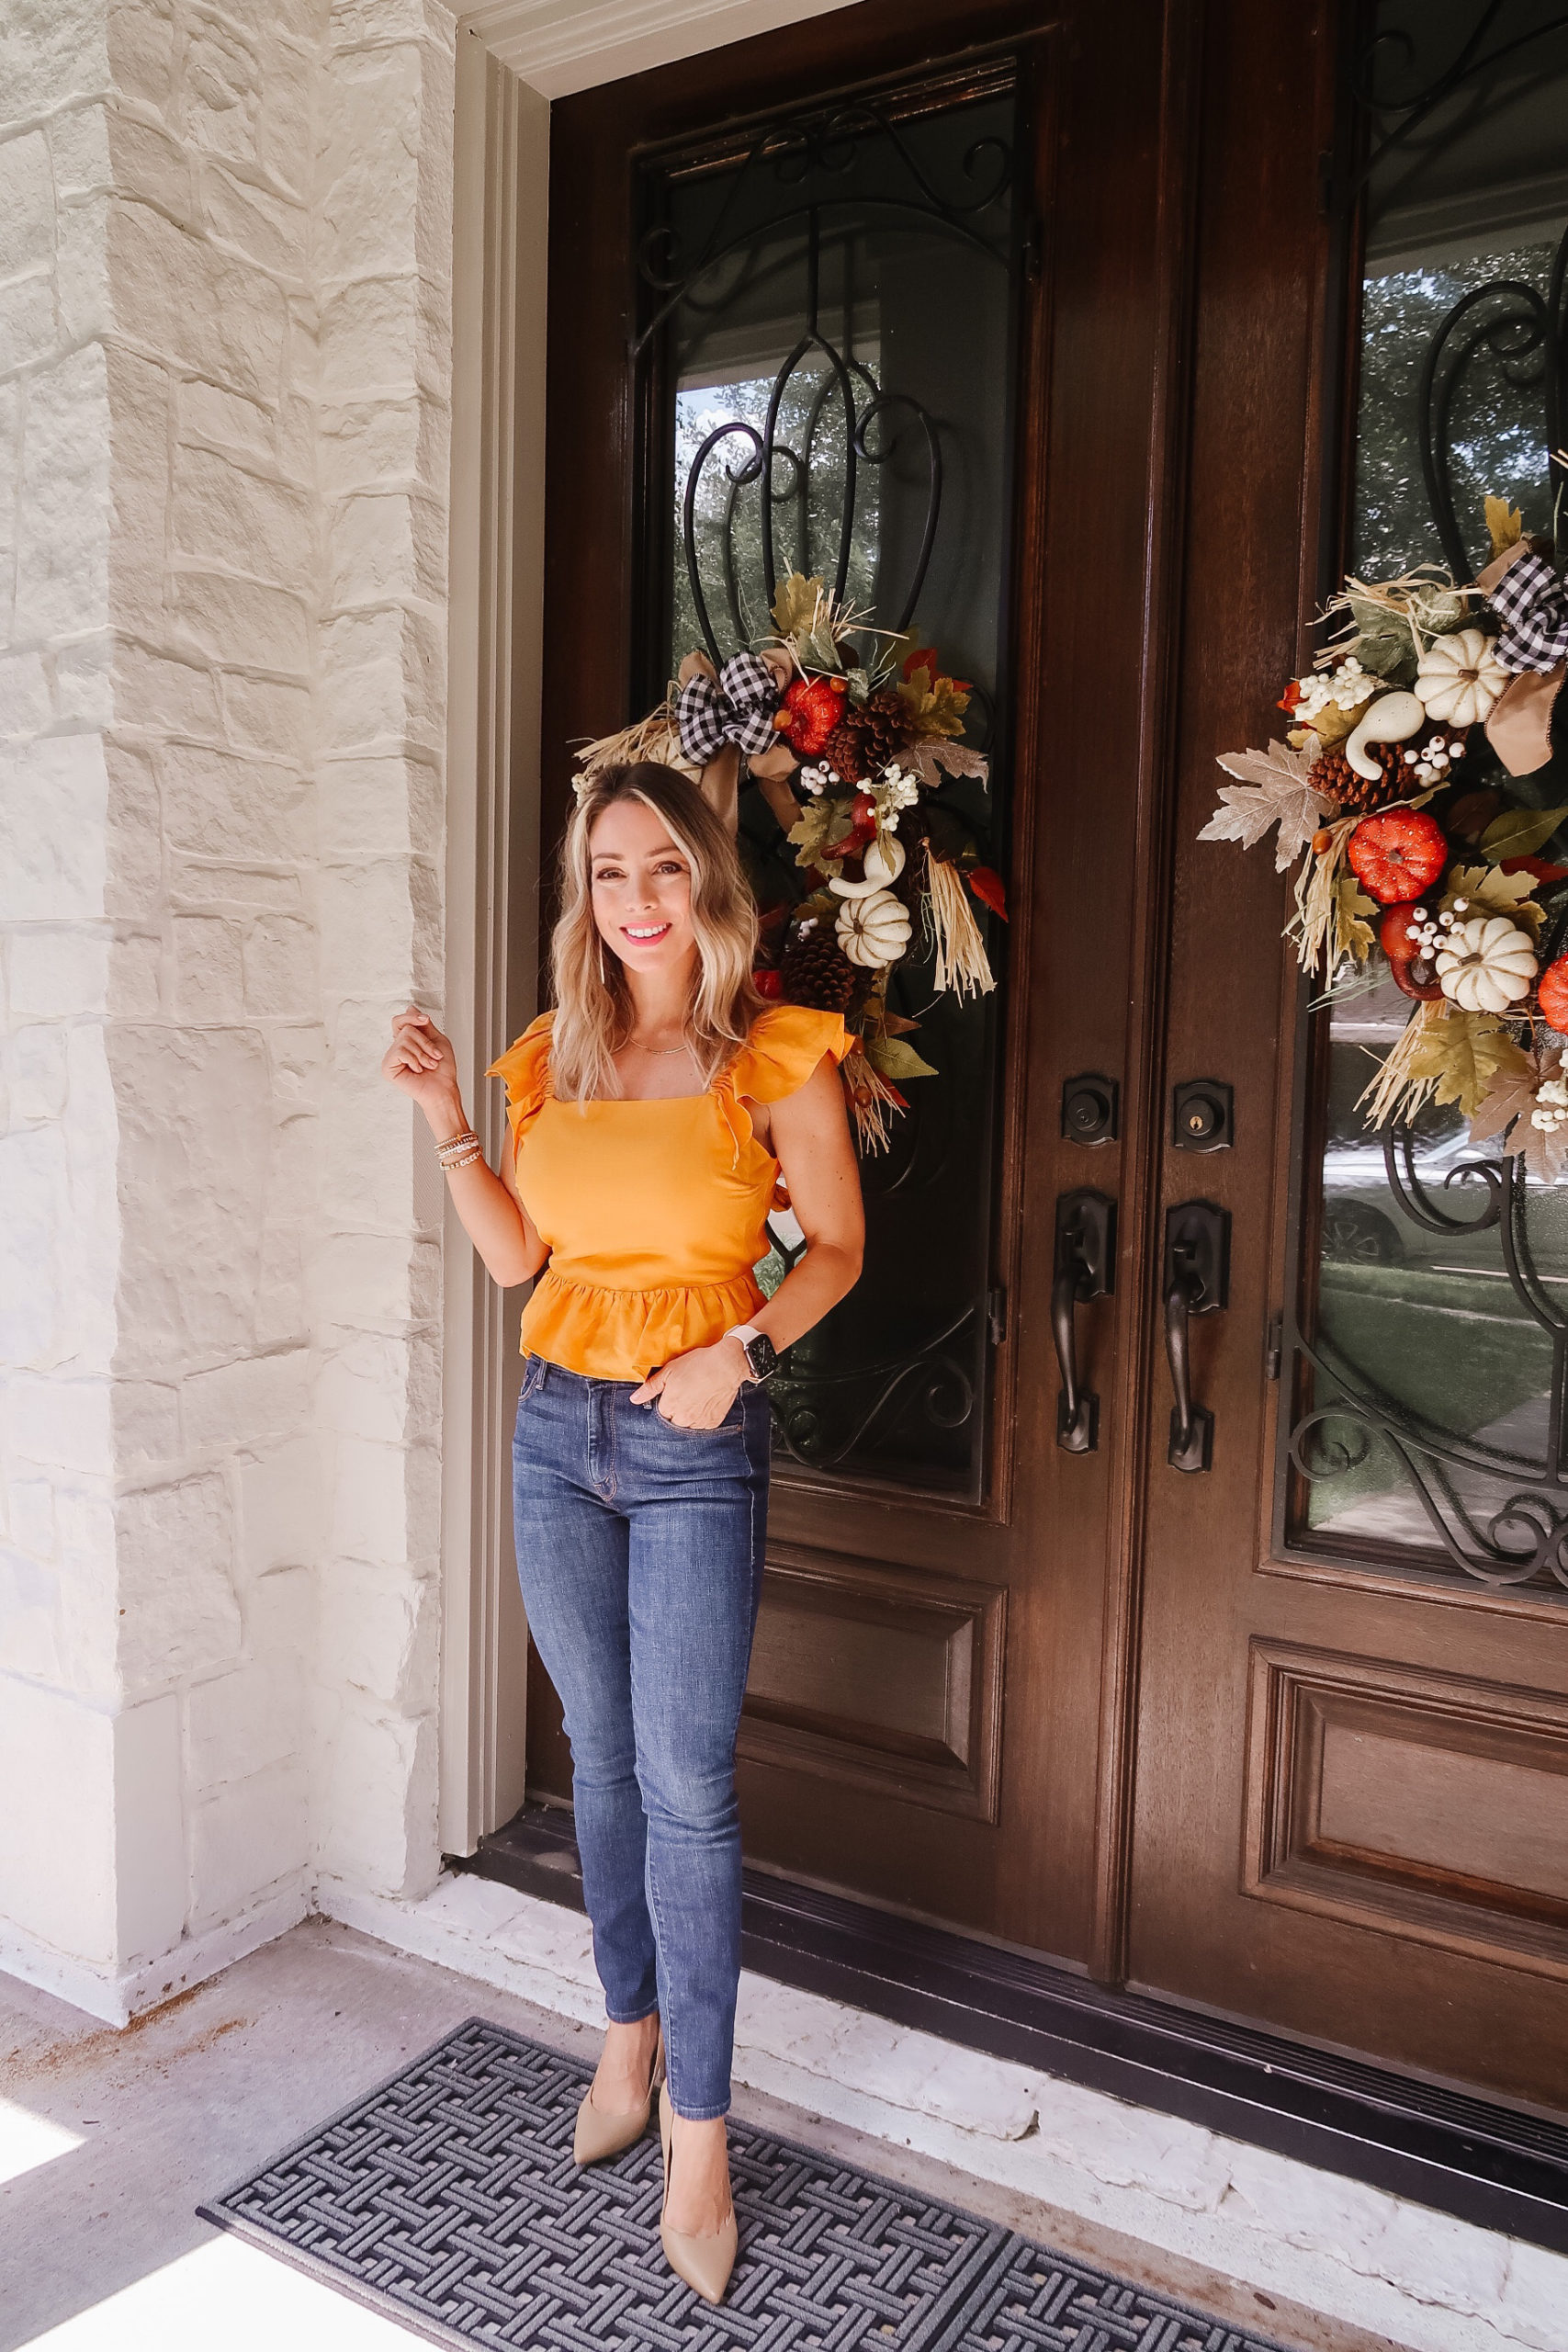 Peplum Top and Jeans with Heels